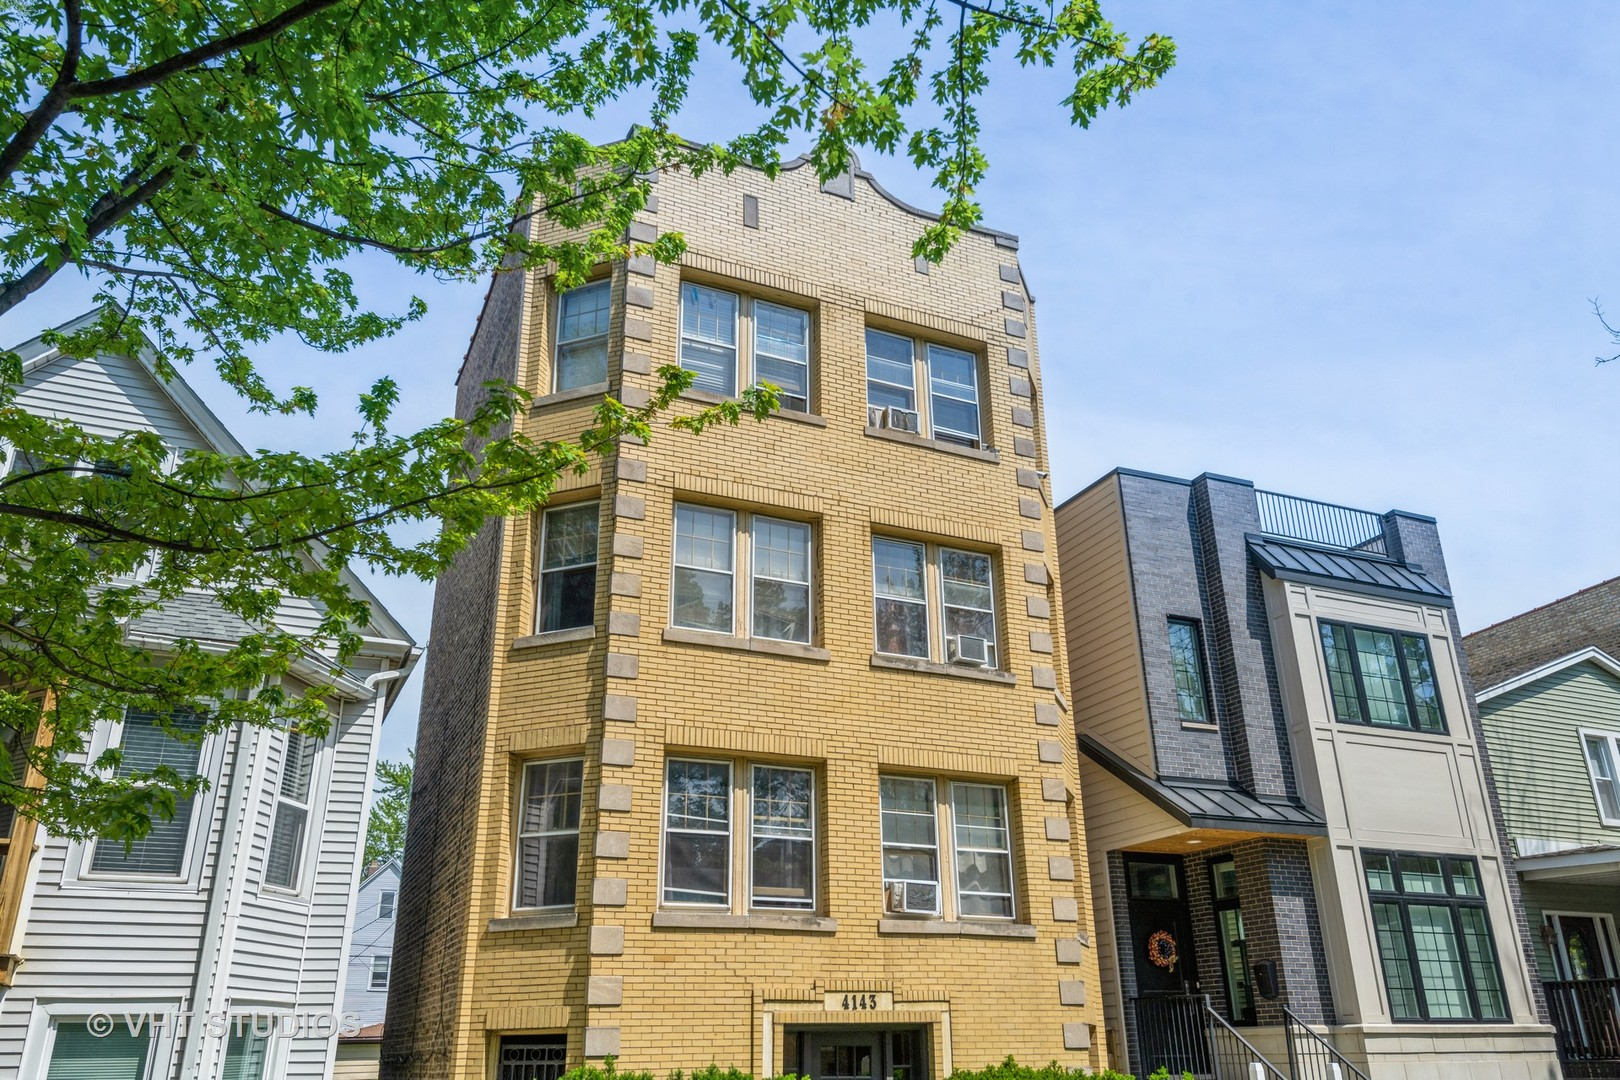 Solid All-brick legal 3-unit building in Old Irving Park East. Just amazing block with beautiful new